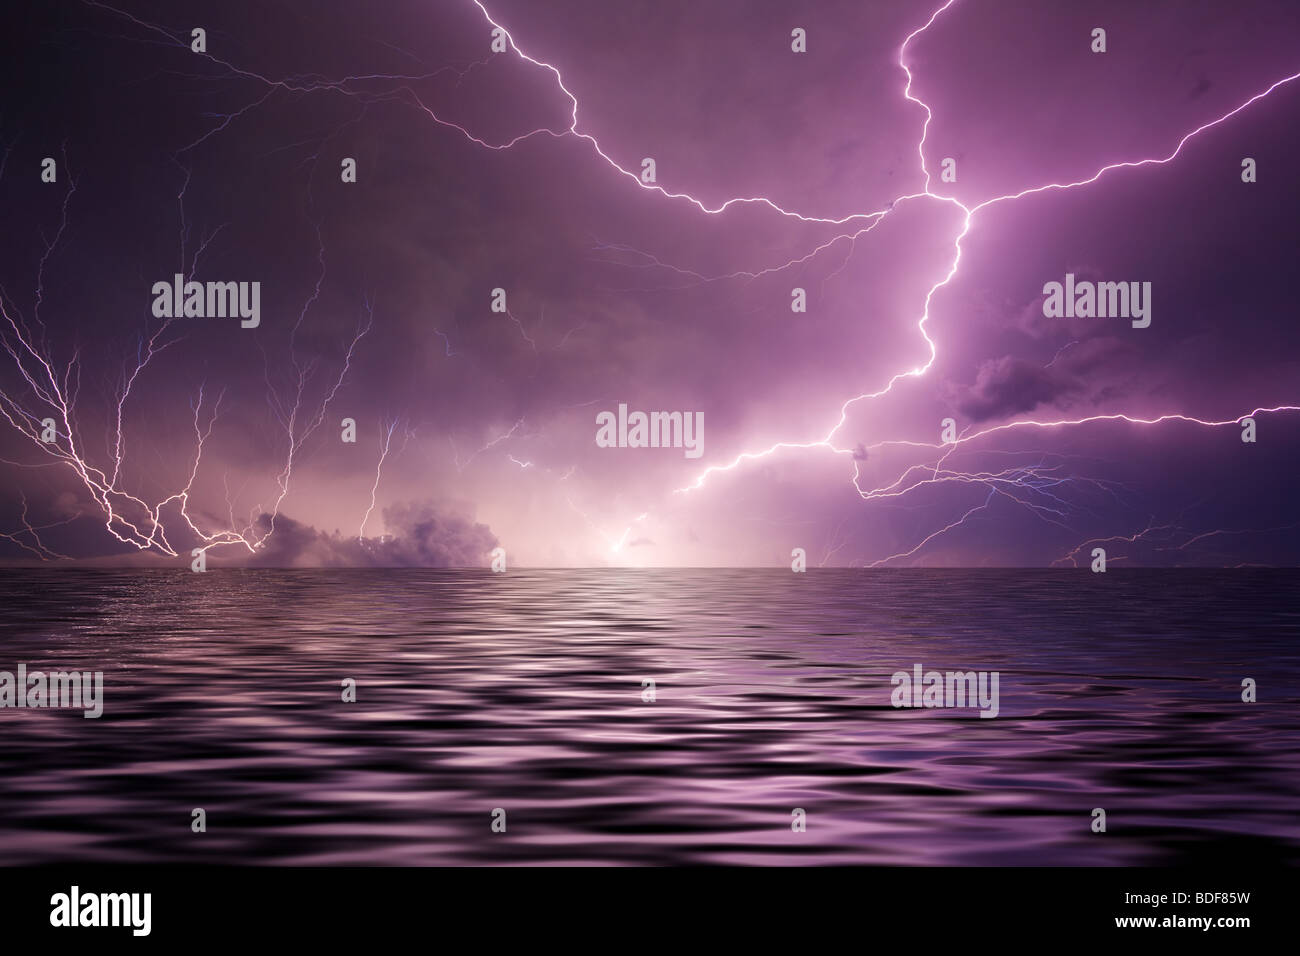 Lightning over water - Stock Image